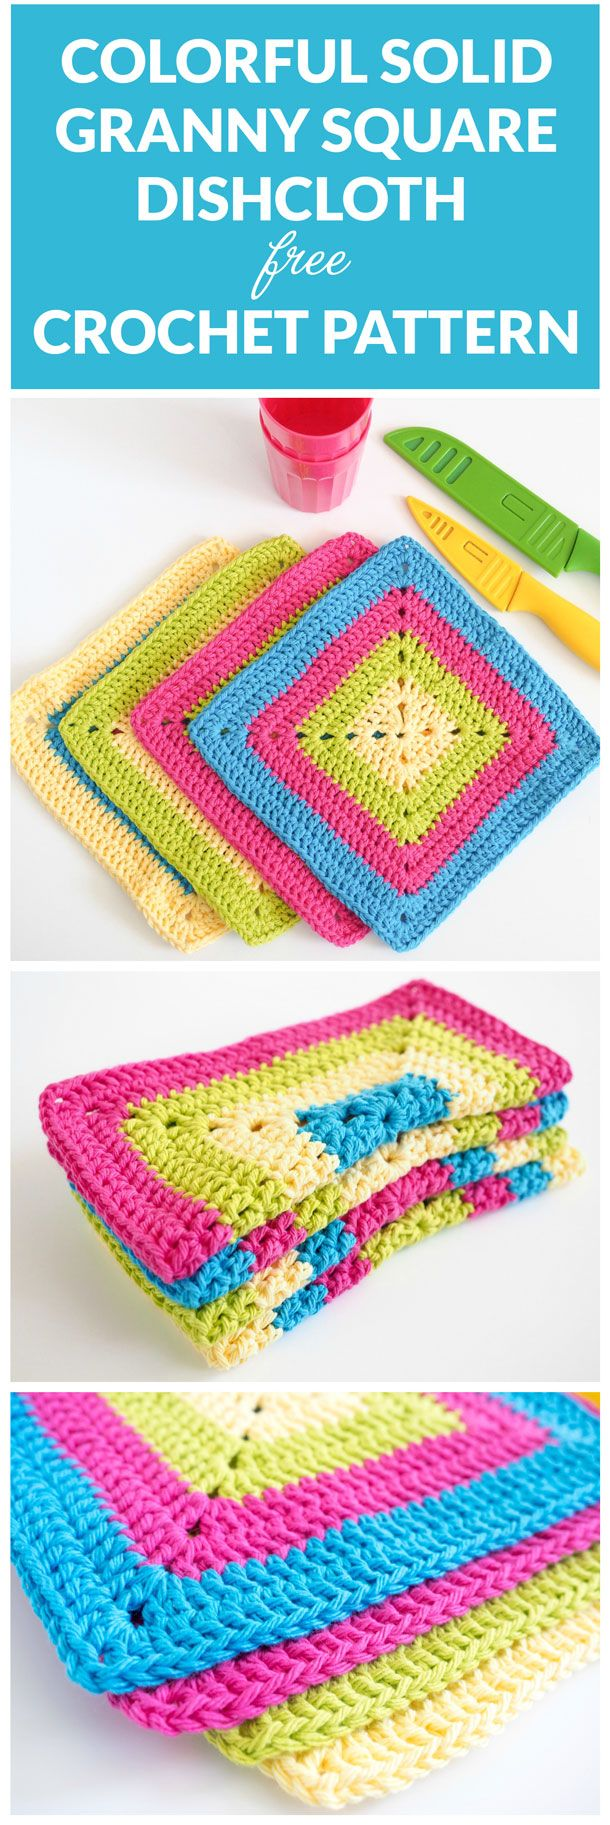 Crochet Granny Square Dishcloth Pattern : Best 25+ Granny square patterns ideas on Pinterest ...